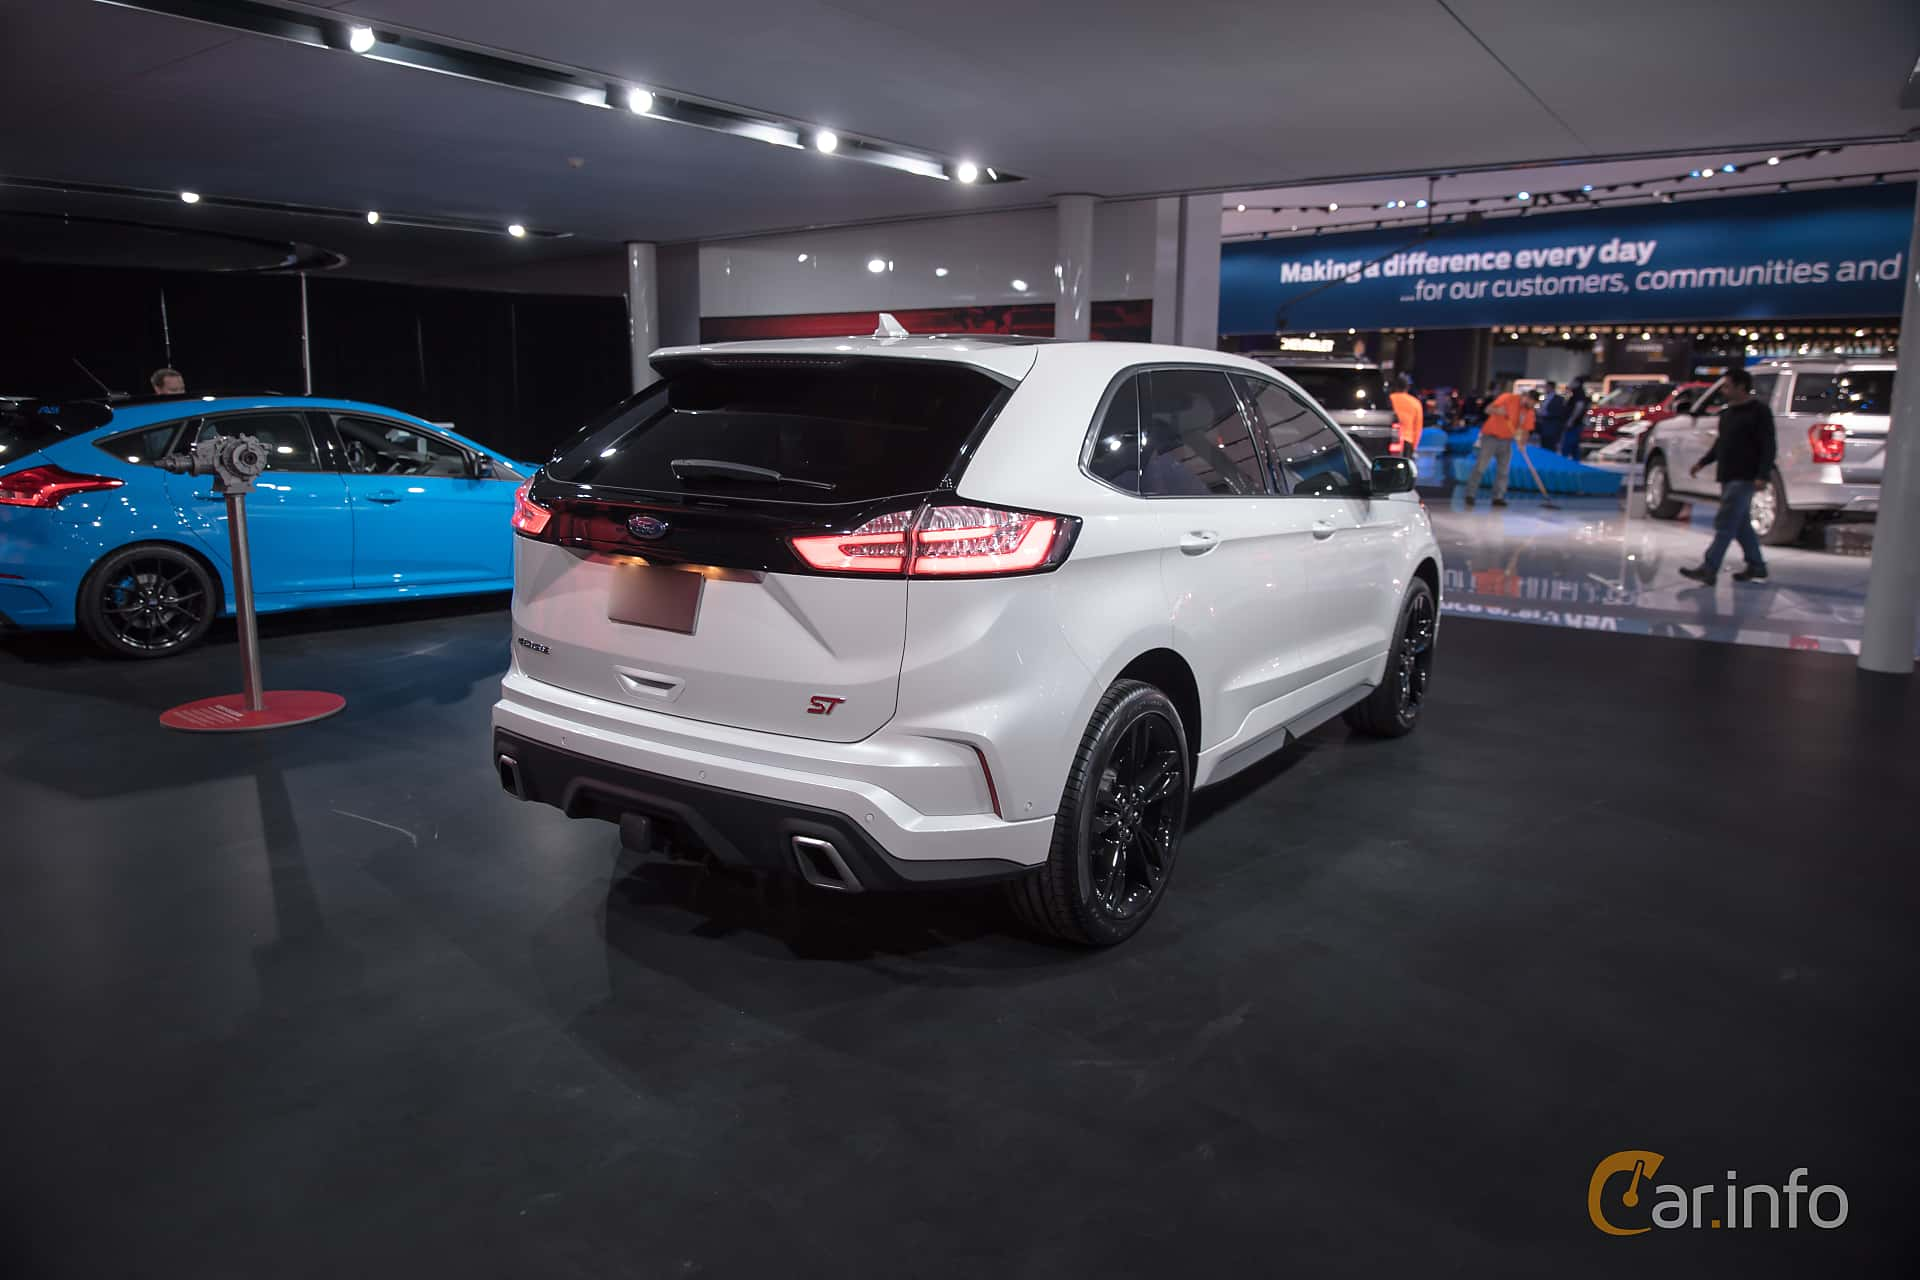 Ford Edge ST 2.7 V6 EcoBoost AWD Automatic, 329hp, 2019 at North American International Auto Show 2018